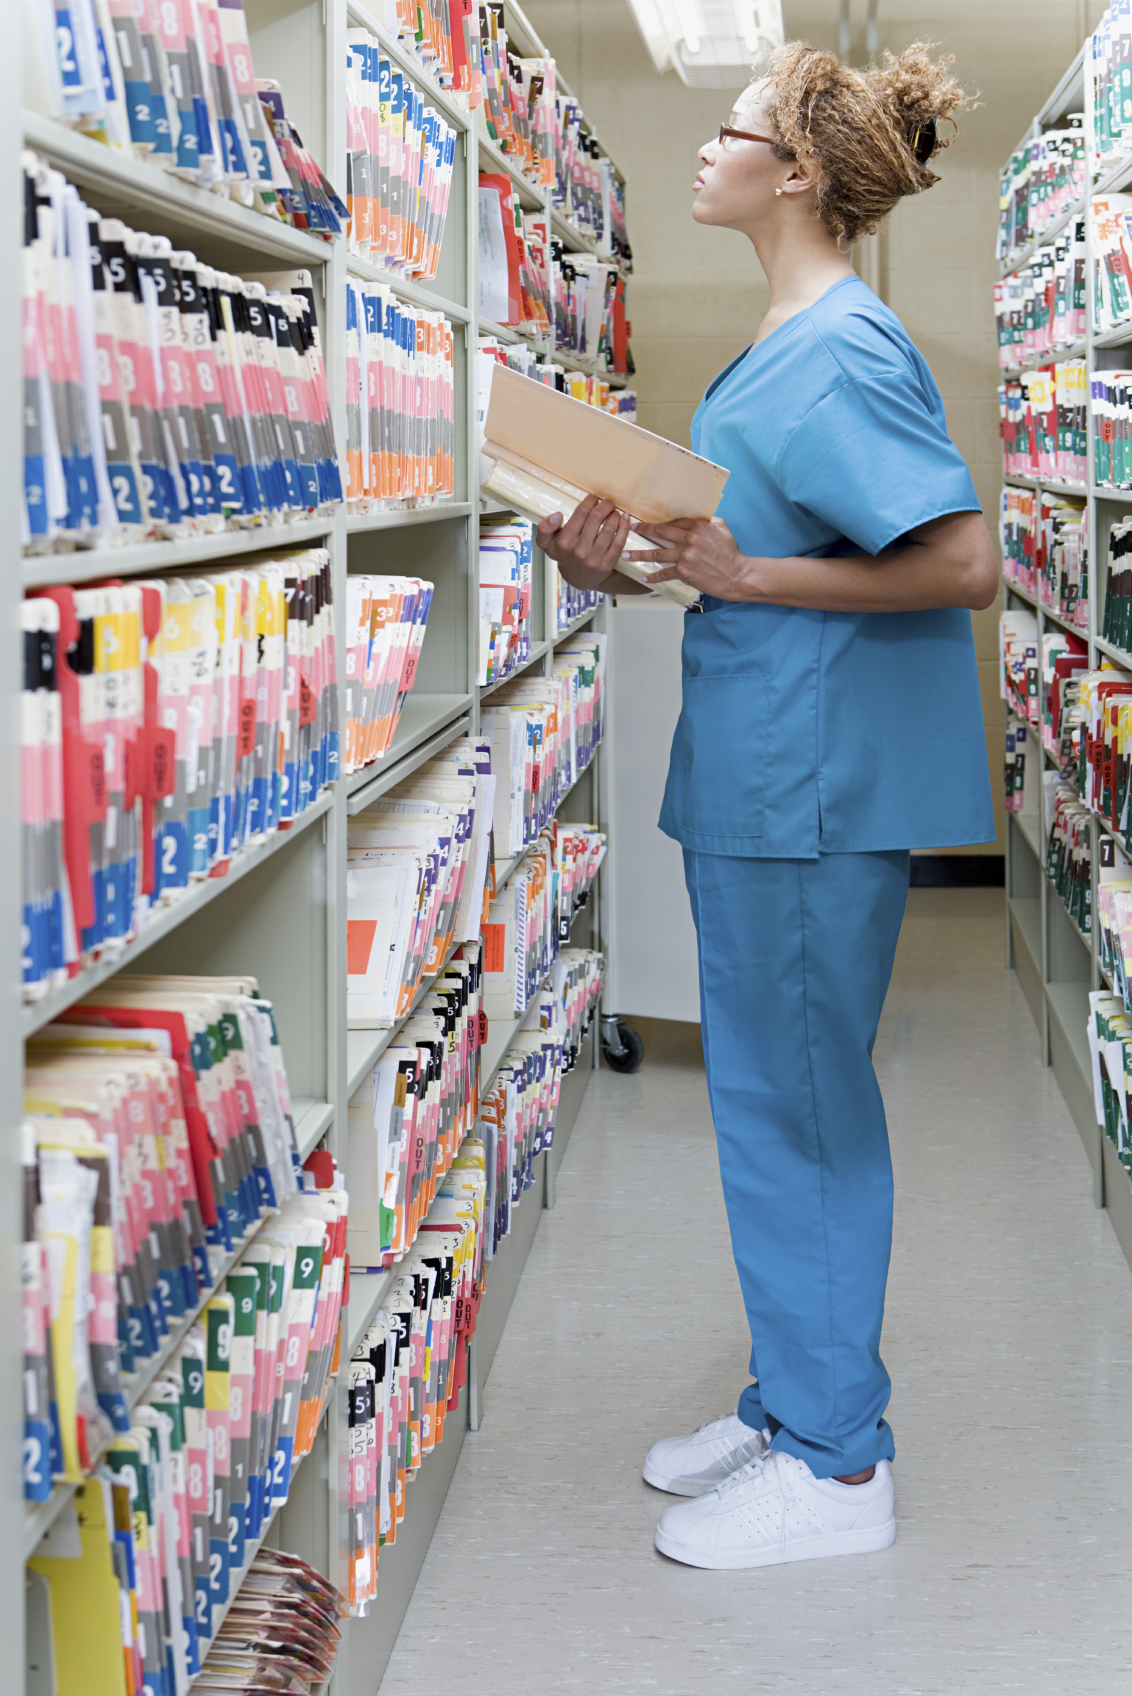 Hospital orderly in archives